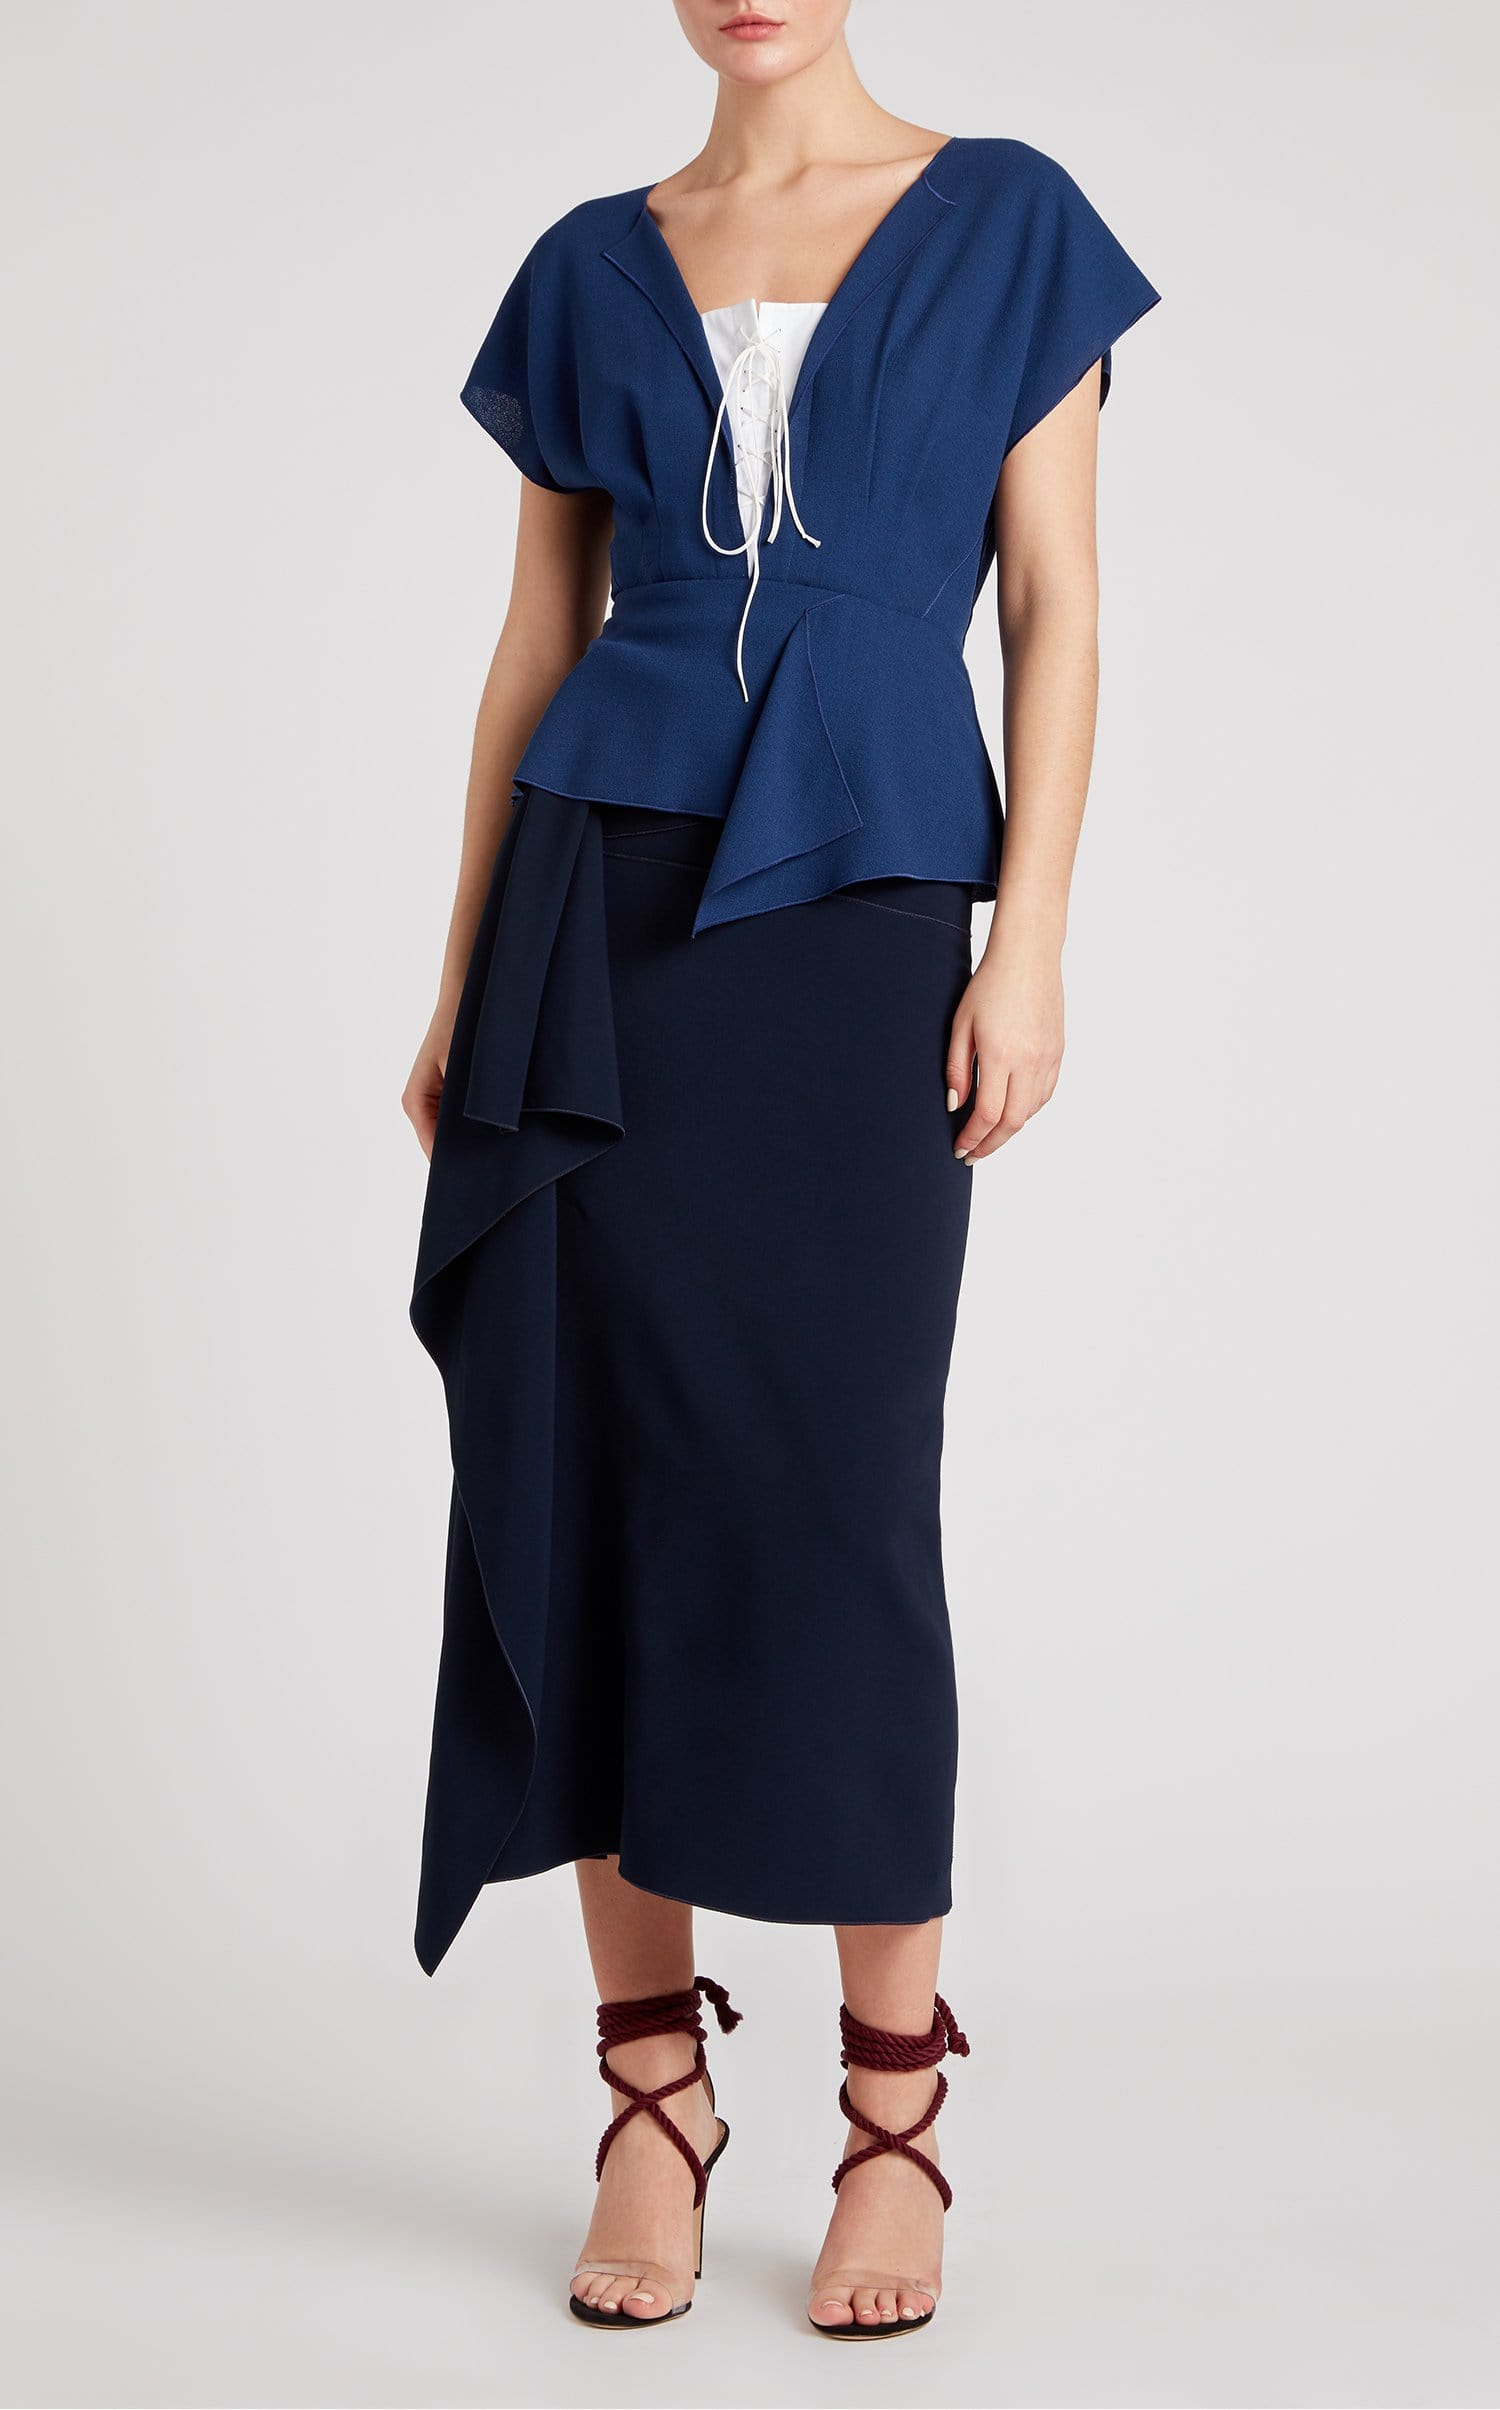 Tayrona Top In Capri Blue/White from Roland Mouret